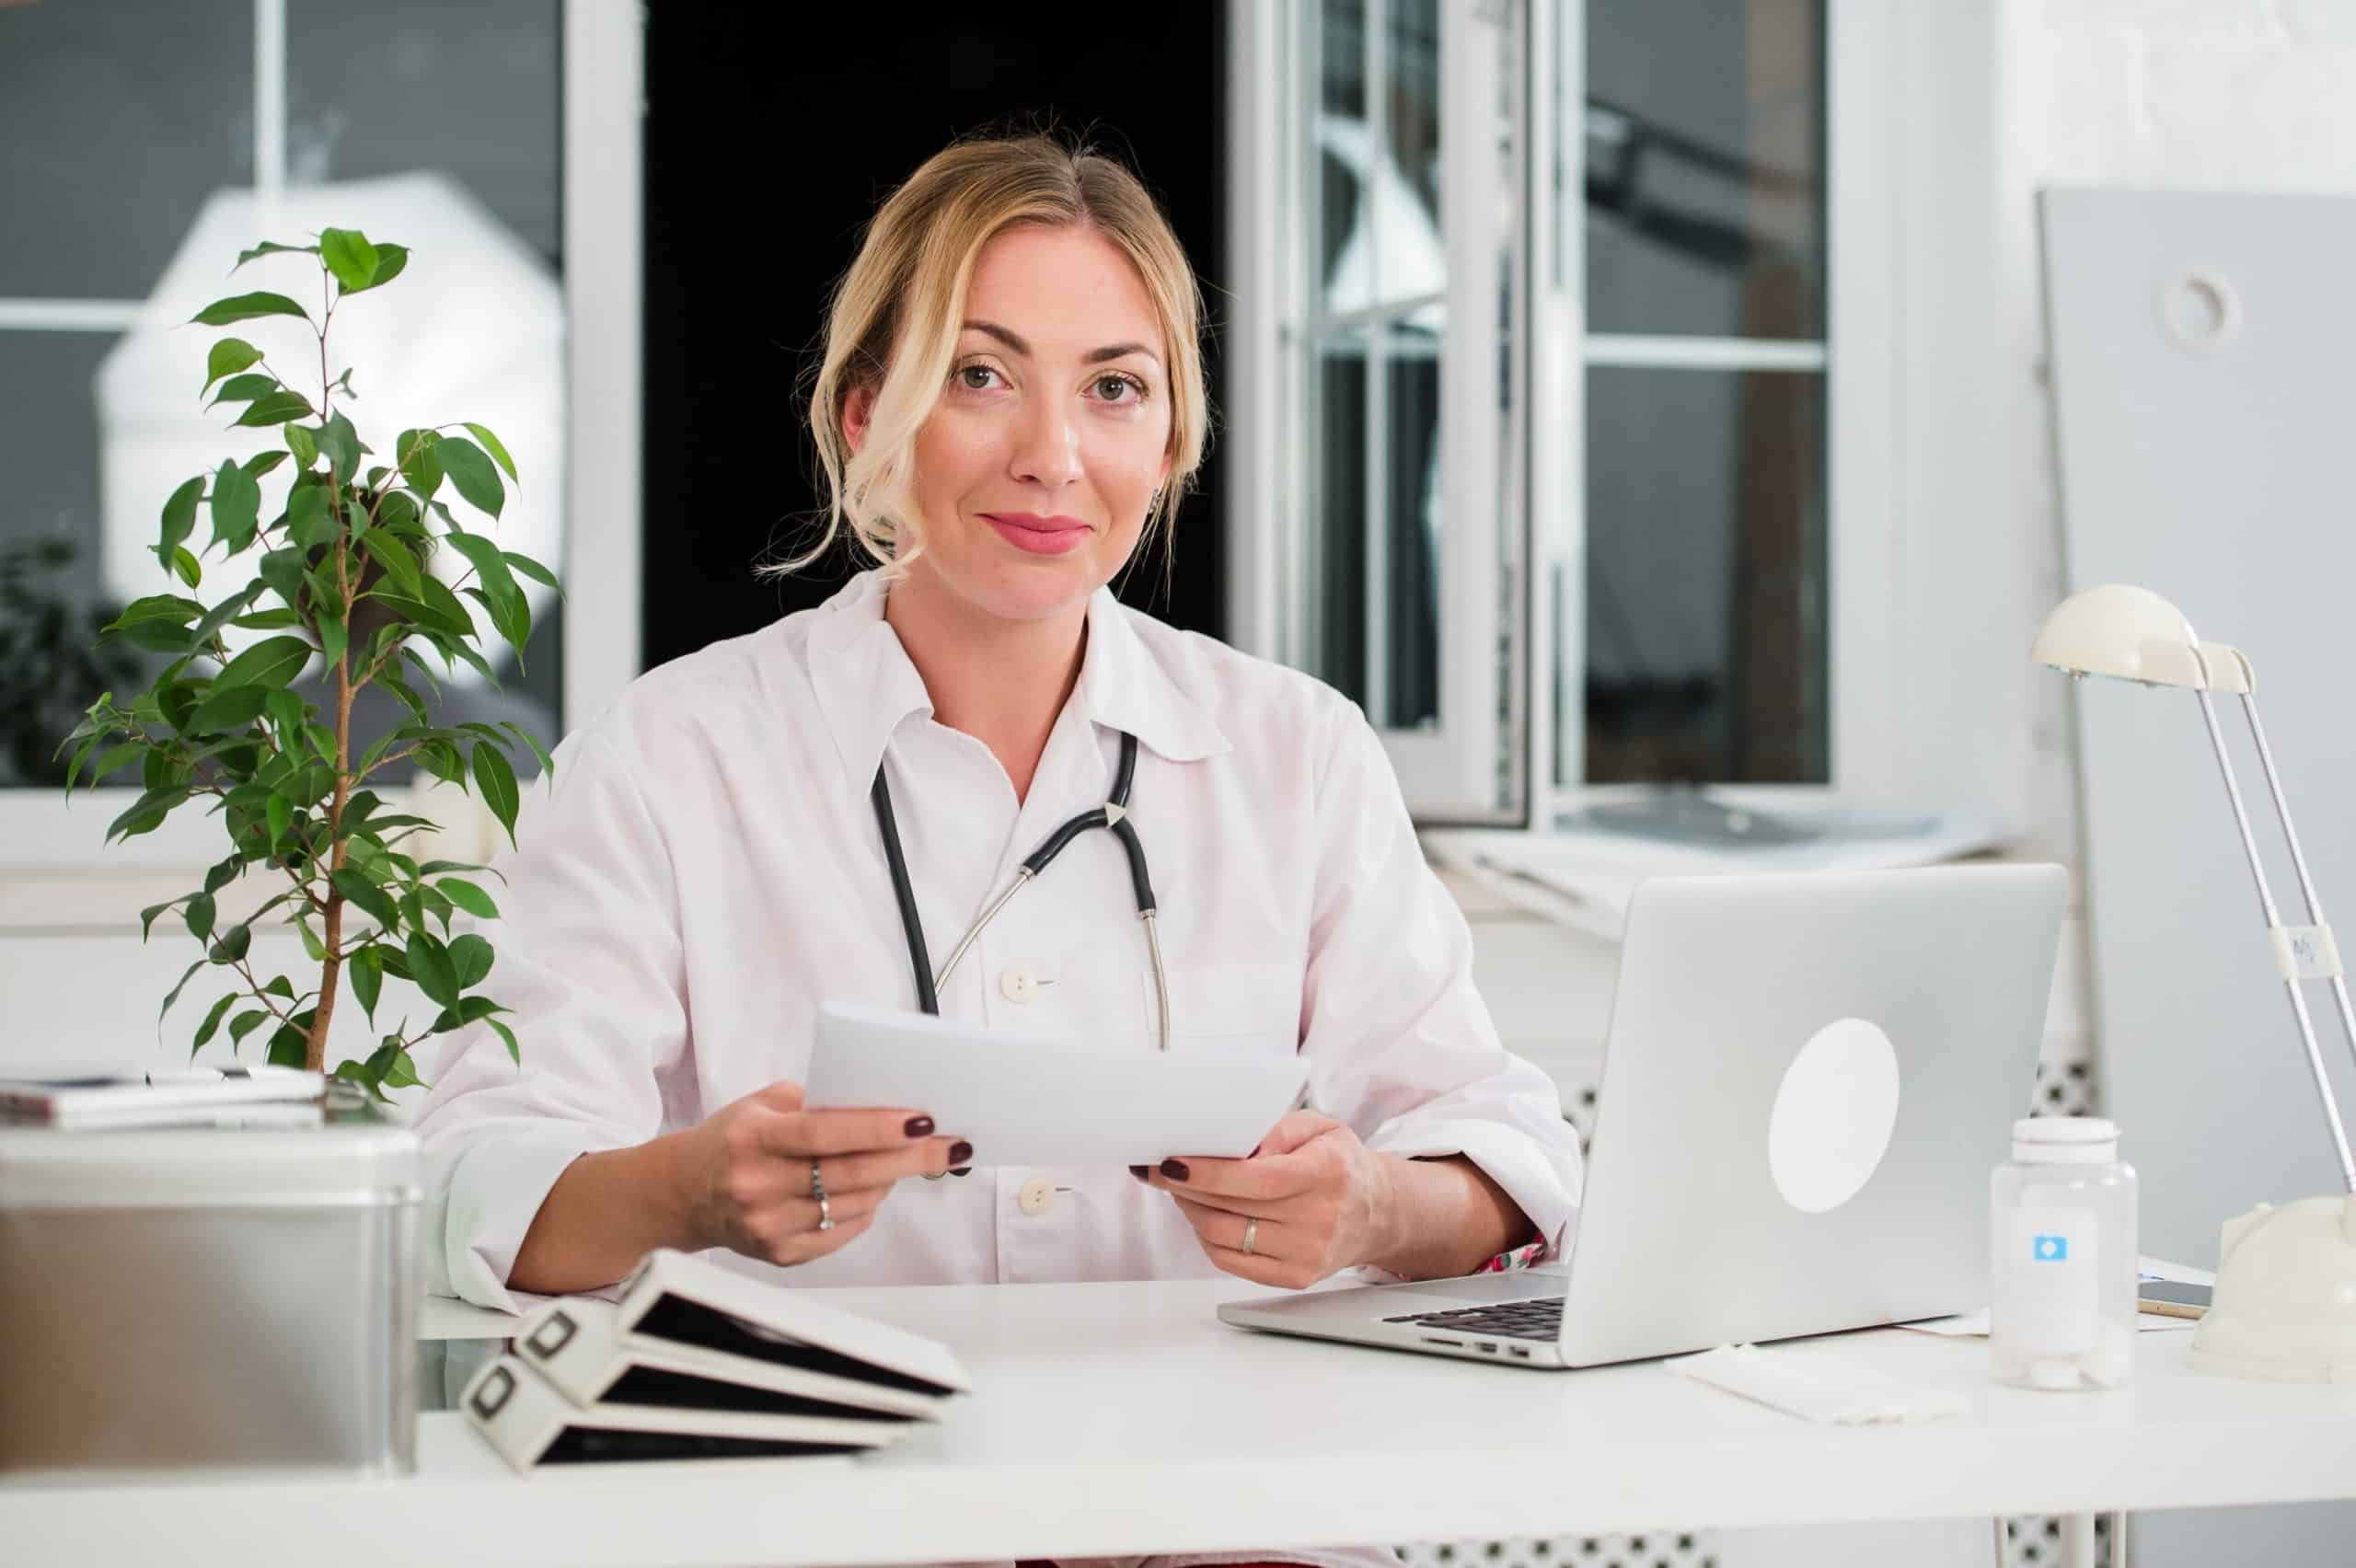 How to Become a Holistic Doctor